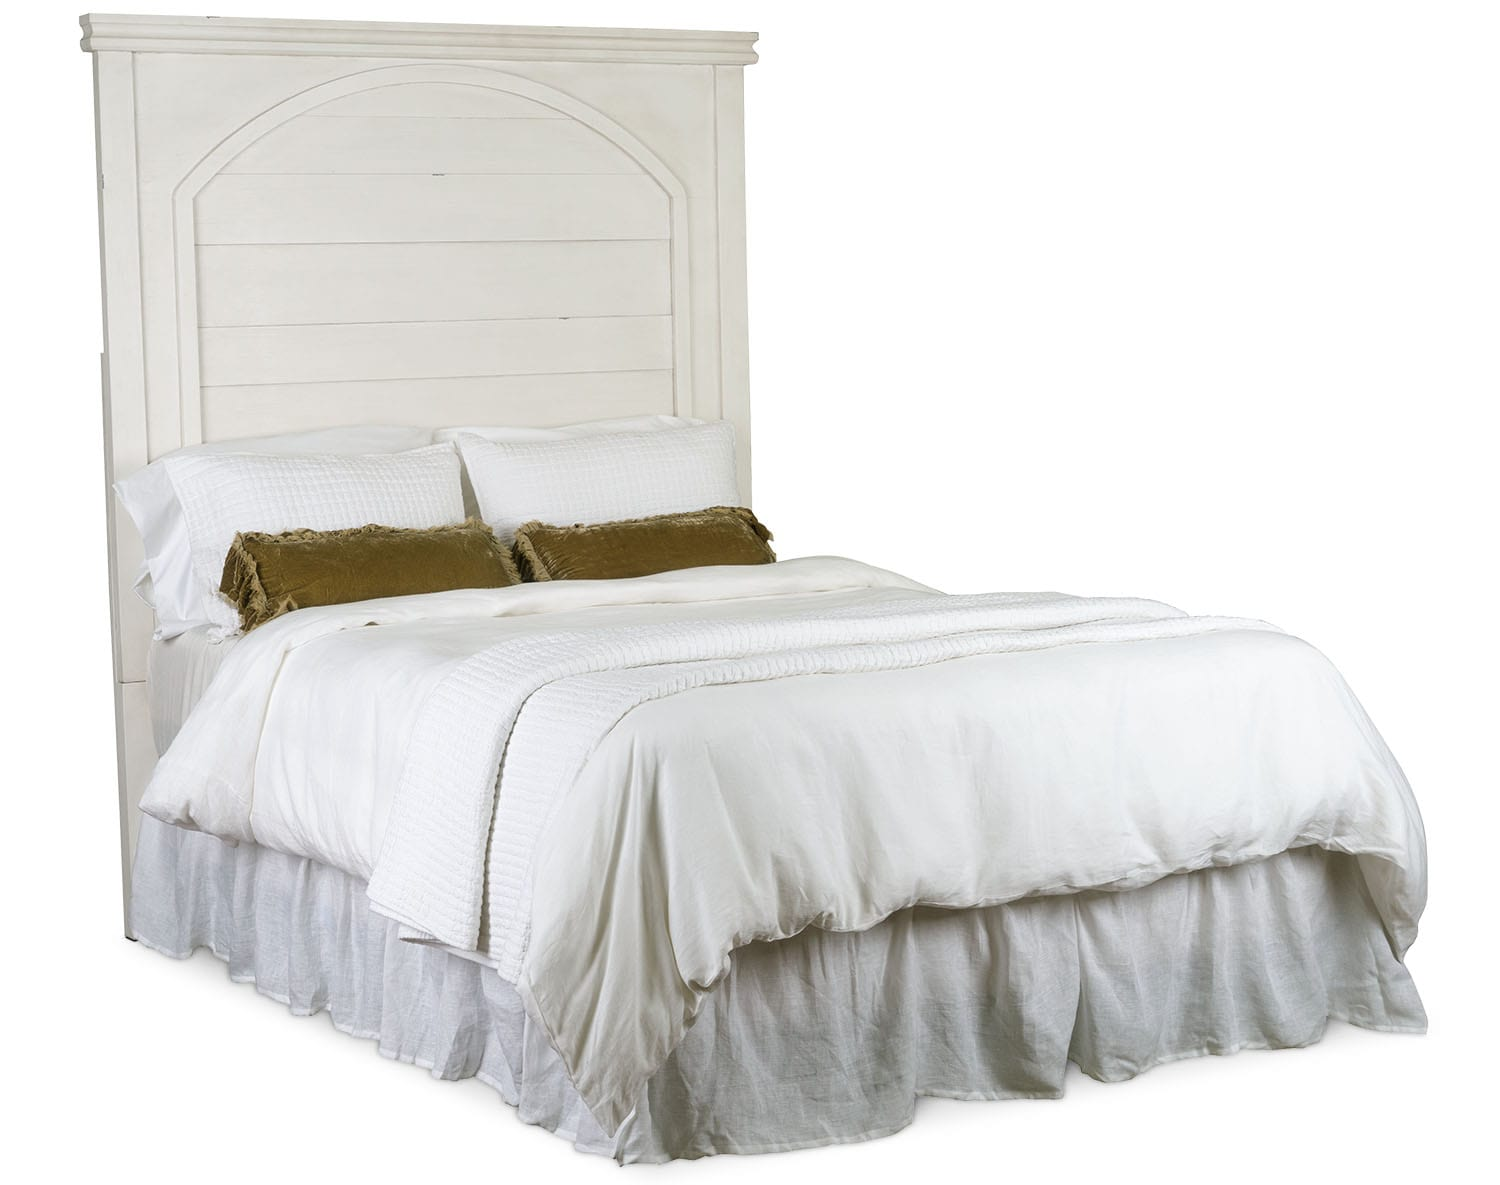 The Farmhouse Arched Passage Headboard Collection